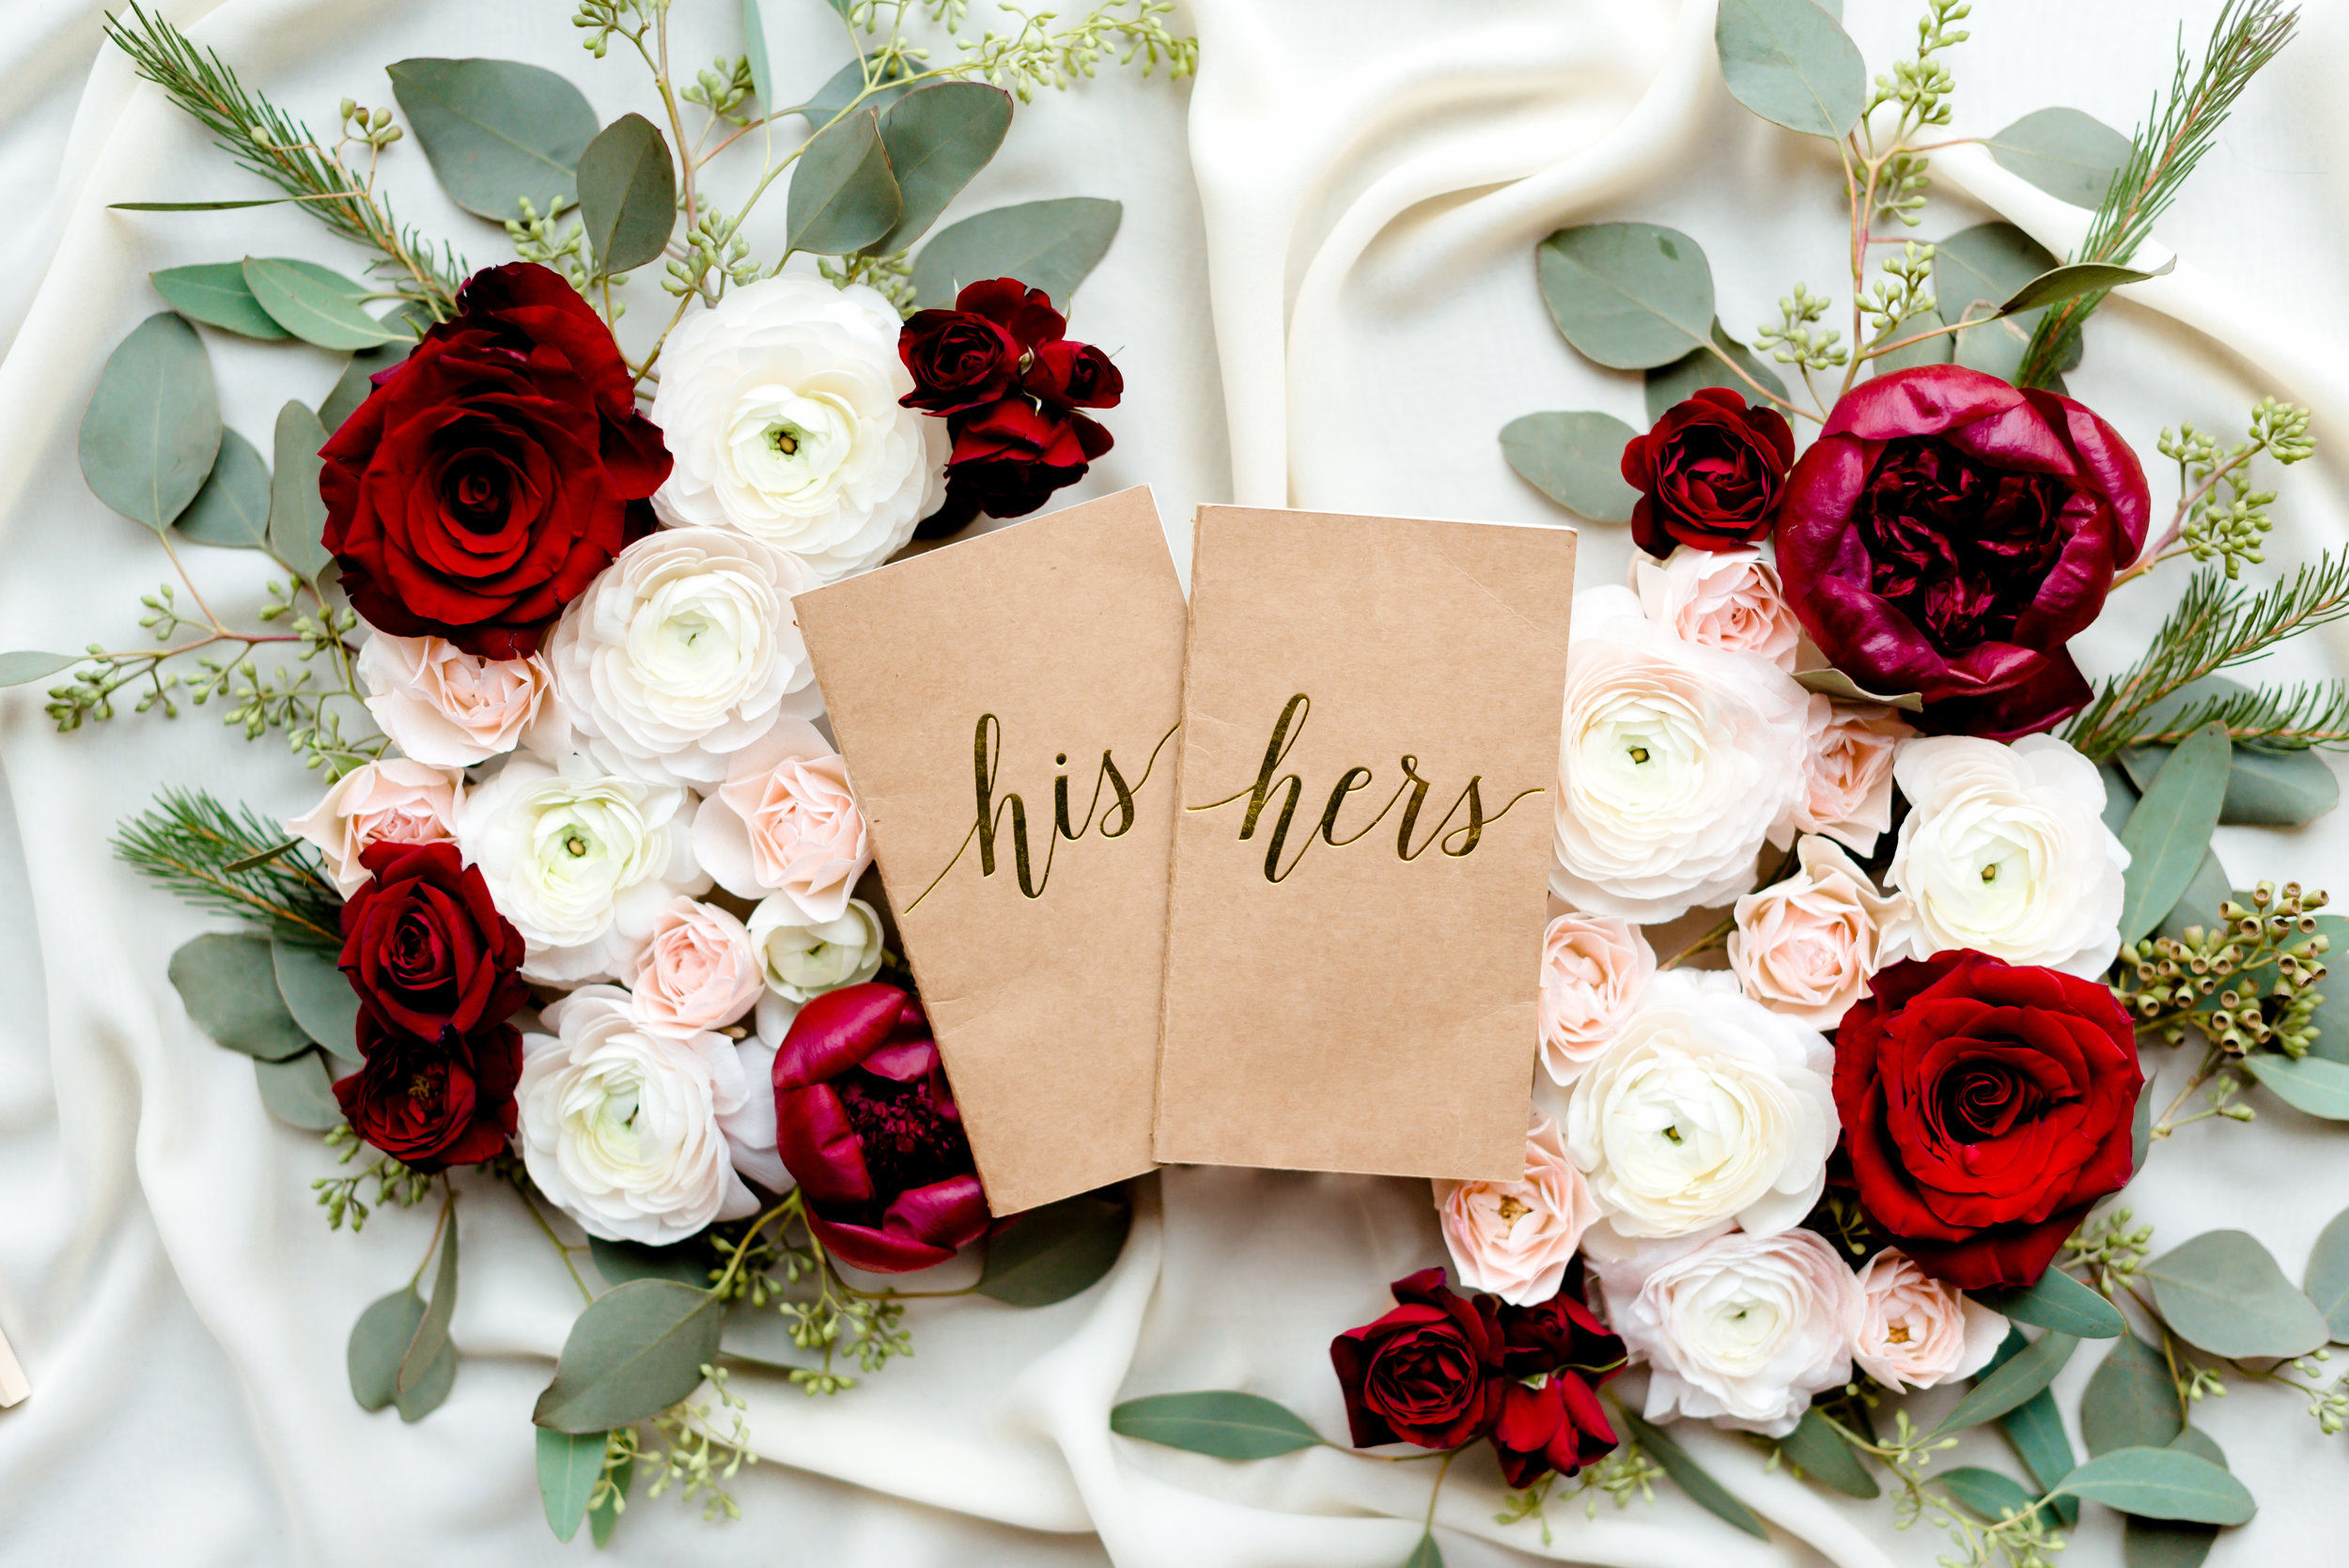 Custom Vow His and Hers Books for Luxury Destination Wedding in Duluth MN at Clyde Iron Works - MN Wedding Photographer